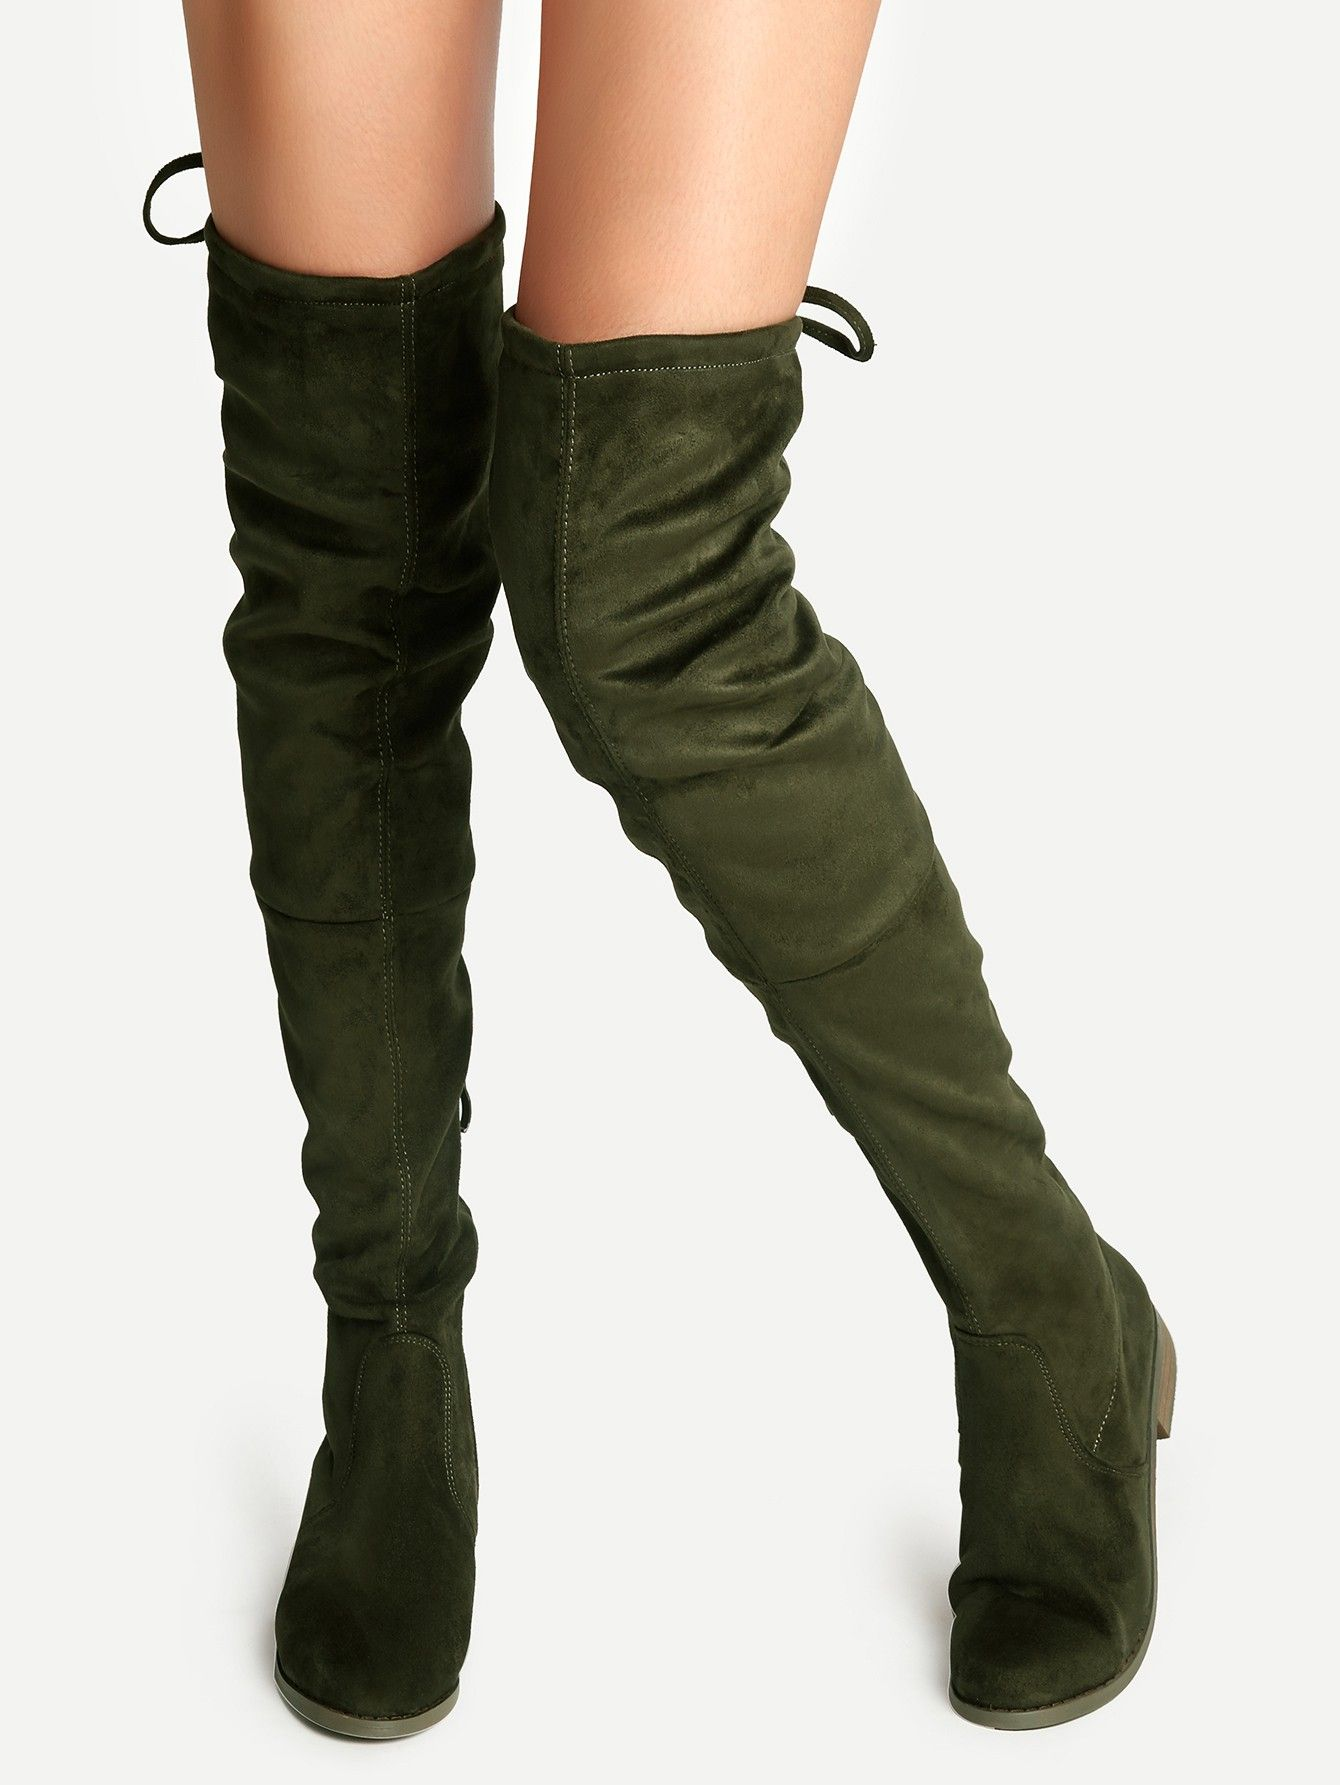 85e186660ff Olive Green Faux Suede Lace Up Over The Knee Boots